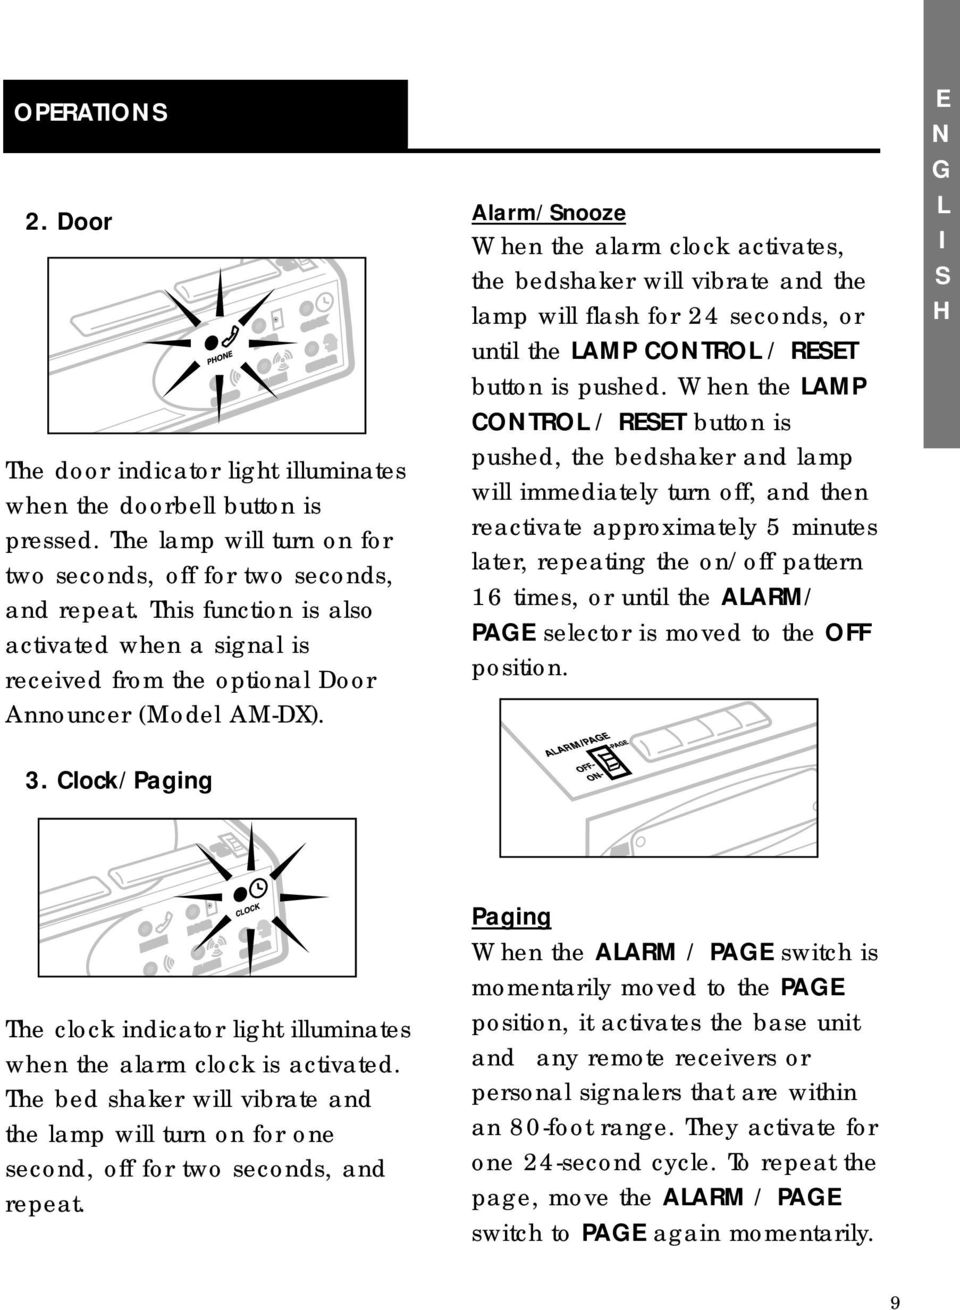 Clock/Paging Alarm/nooze When the alarm clock activates, the bedshaker will vibrate and the lamp will flash for 24 seconds, or until the LAMP CONTROL / REET button is pushed.